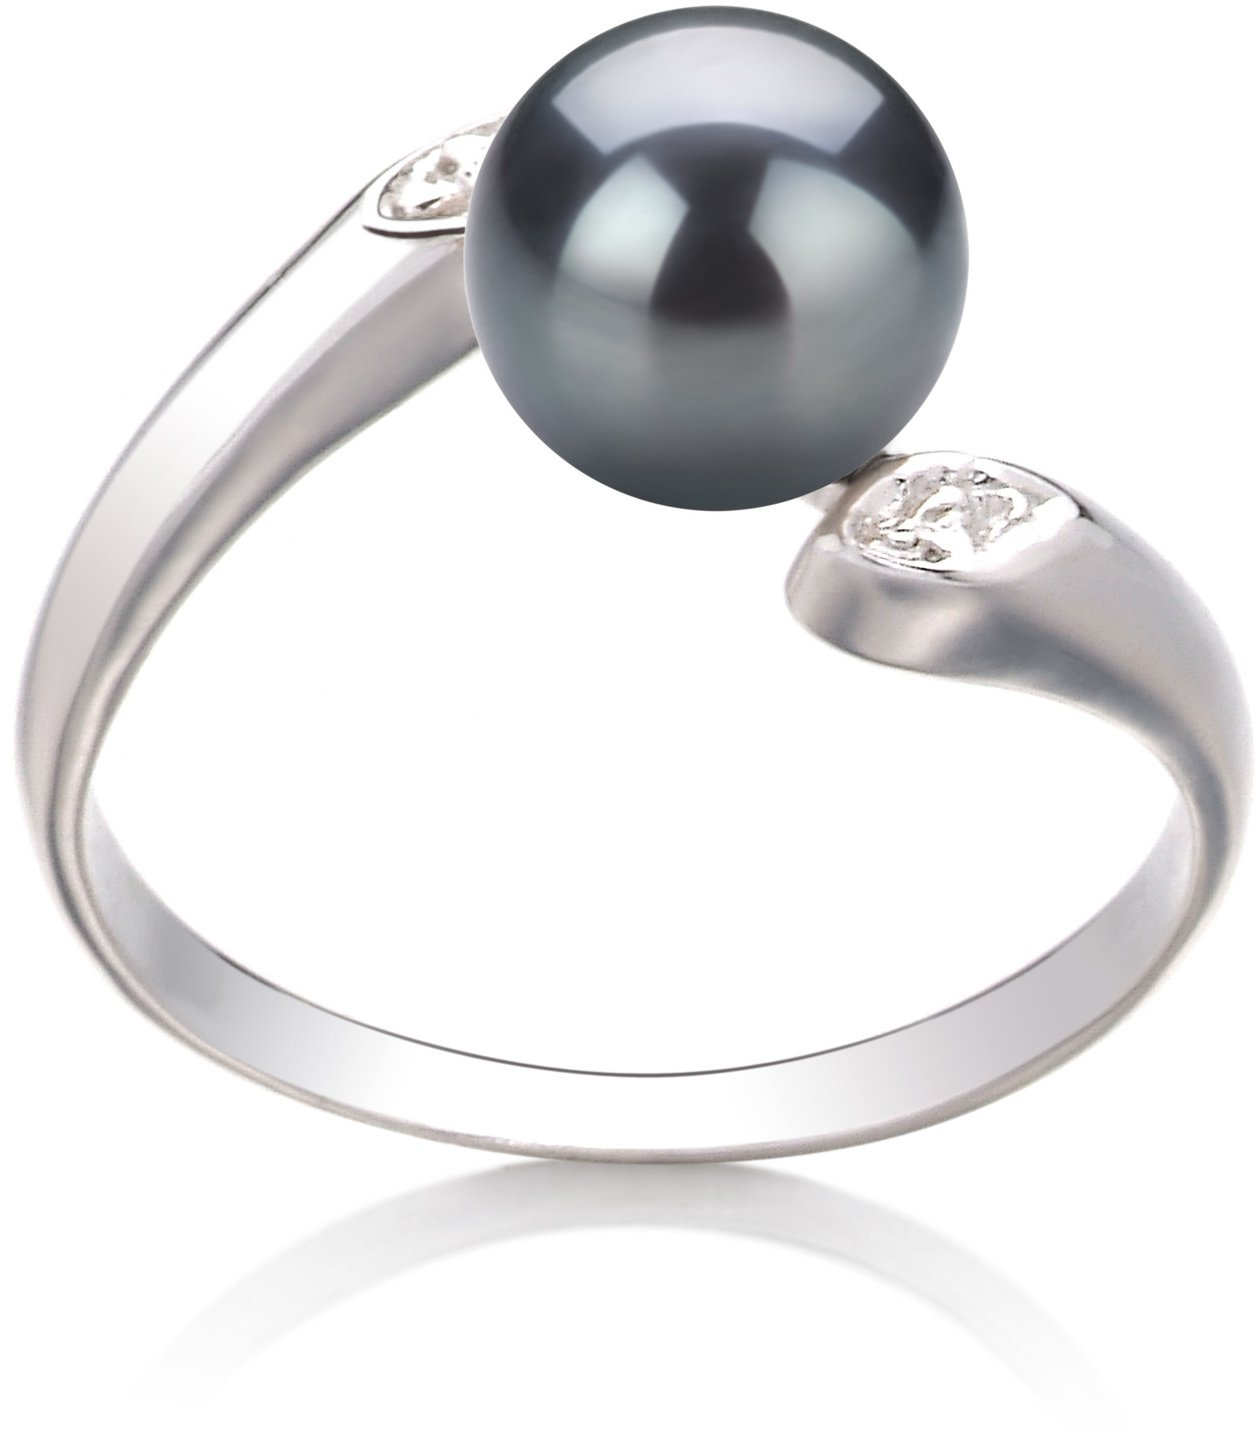 Dana Black 6-7mm AAA Quality Freshwater 925 Sterling Silver Cultured Pearl Ring - Size-7